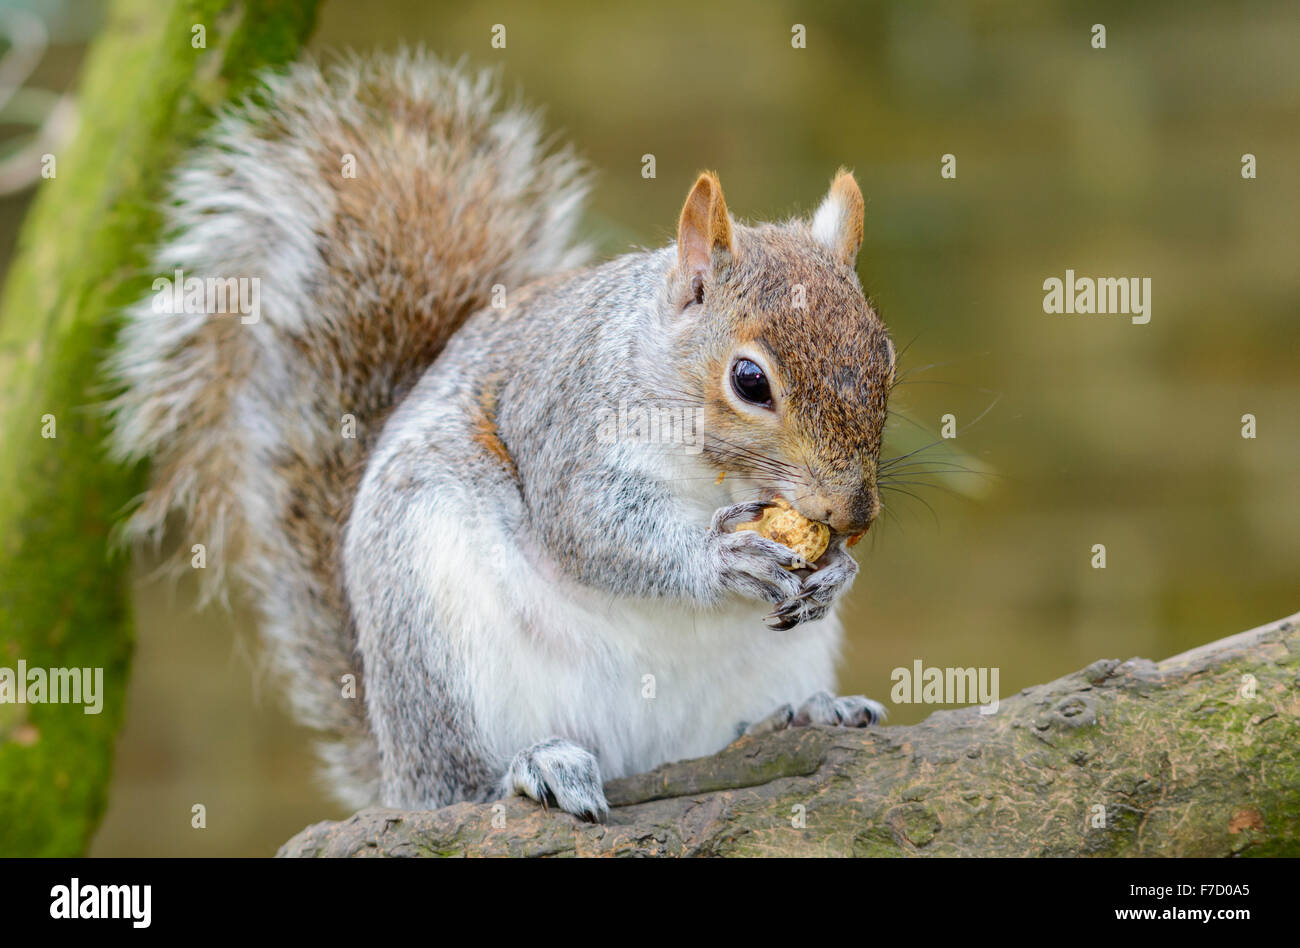 Eastern Grey Squirrel (Sciurus Carolinensis) eating a nut on the branch of a tree. Stock Photo